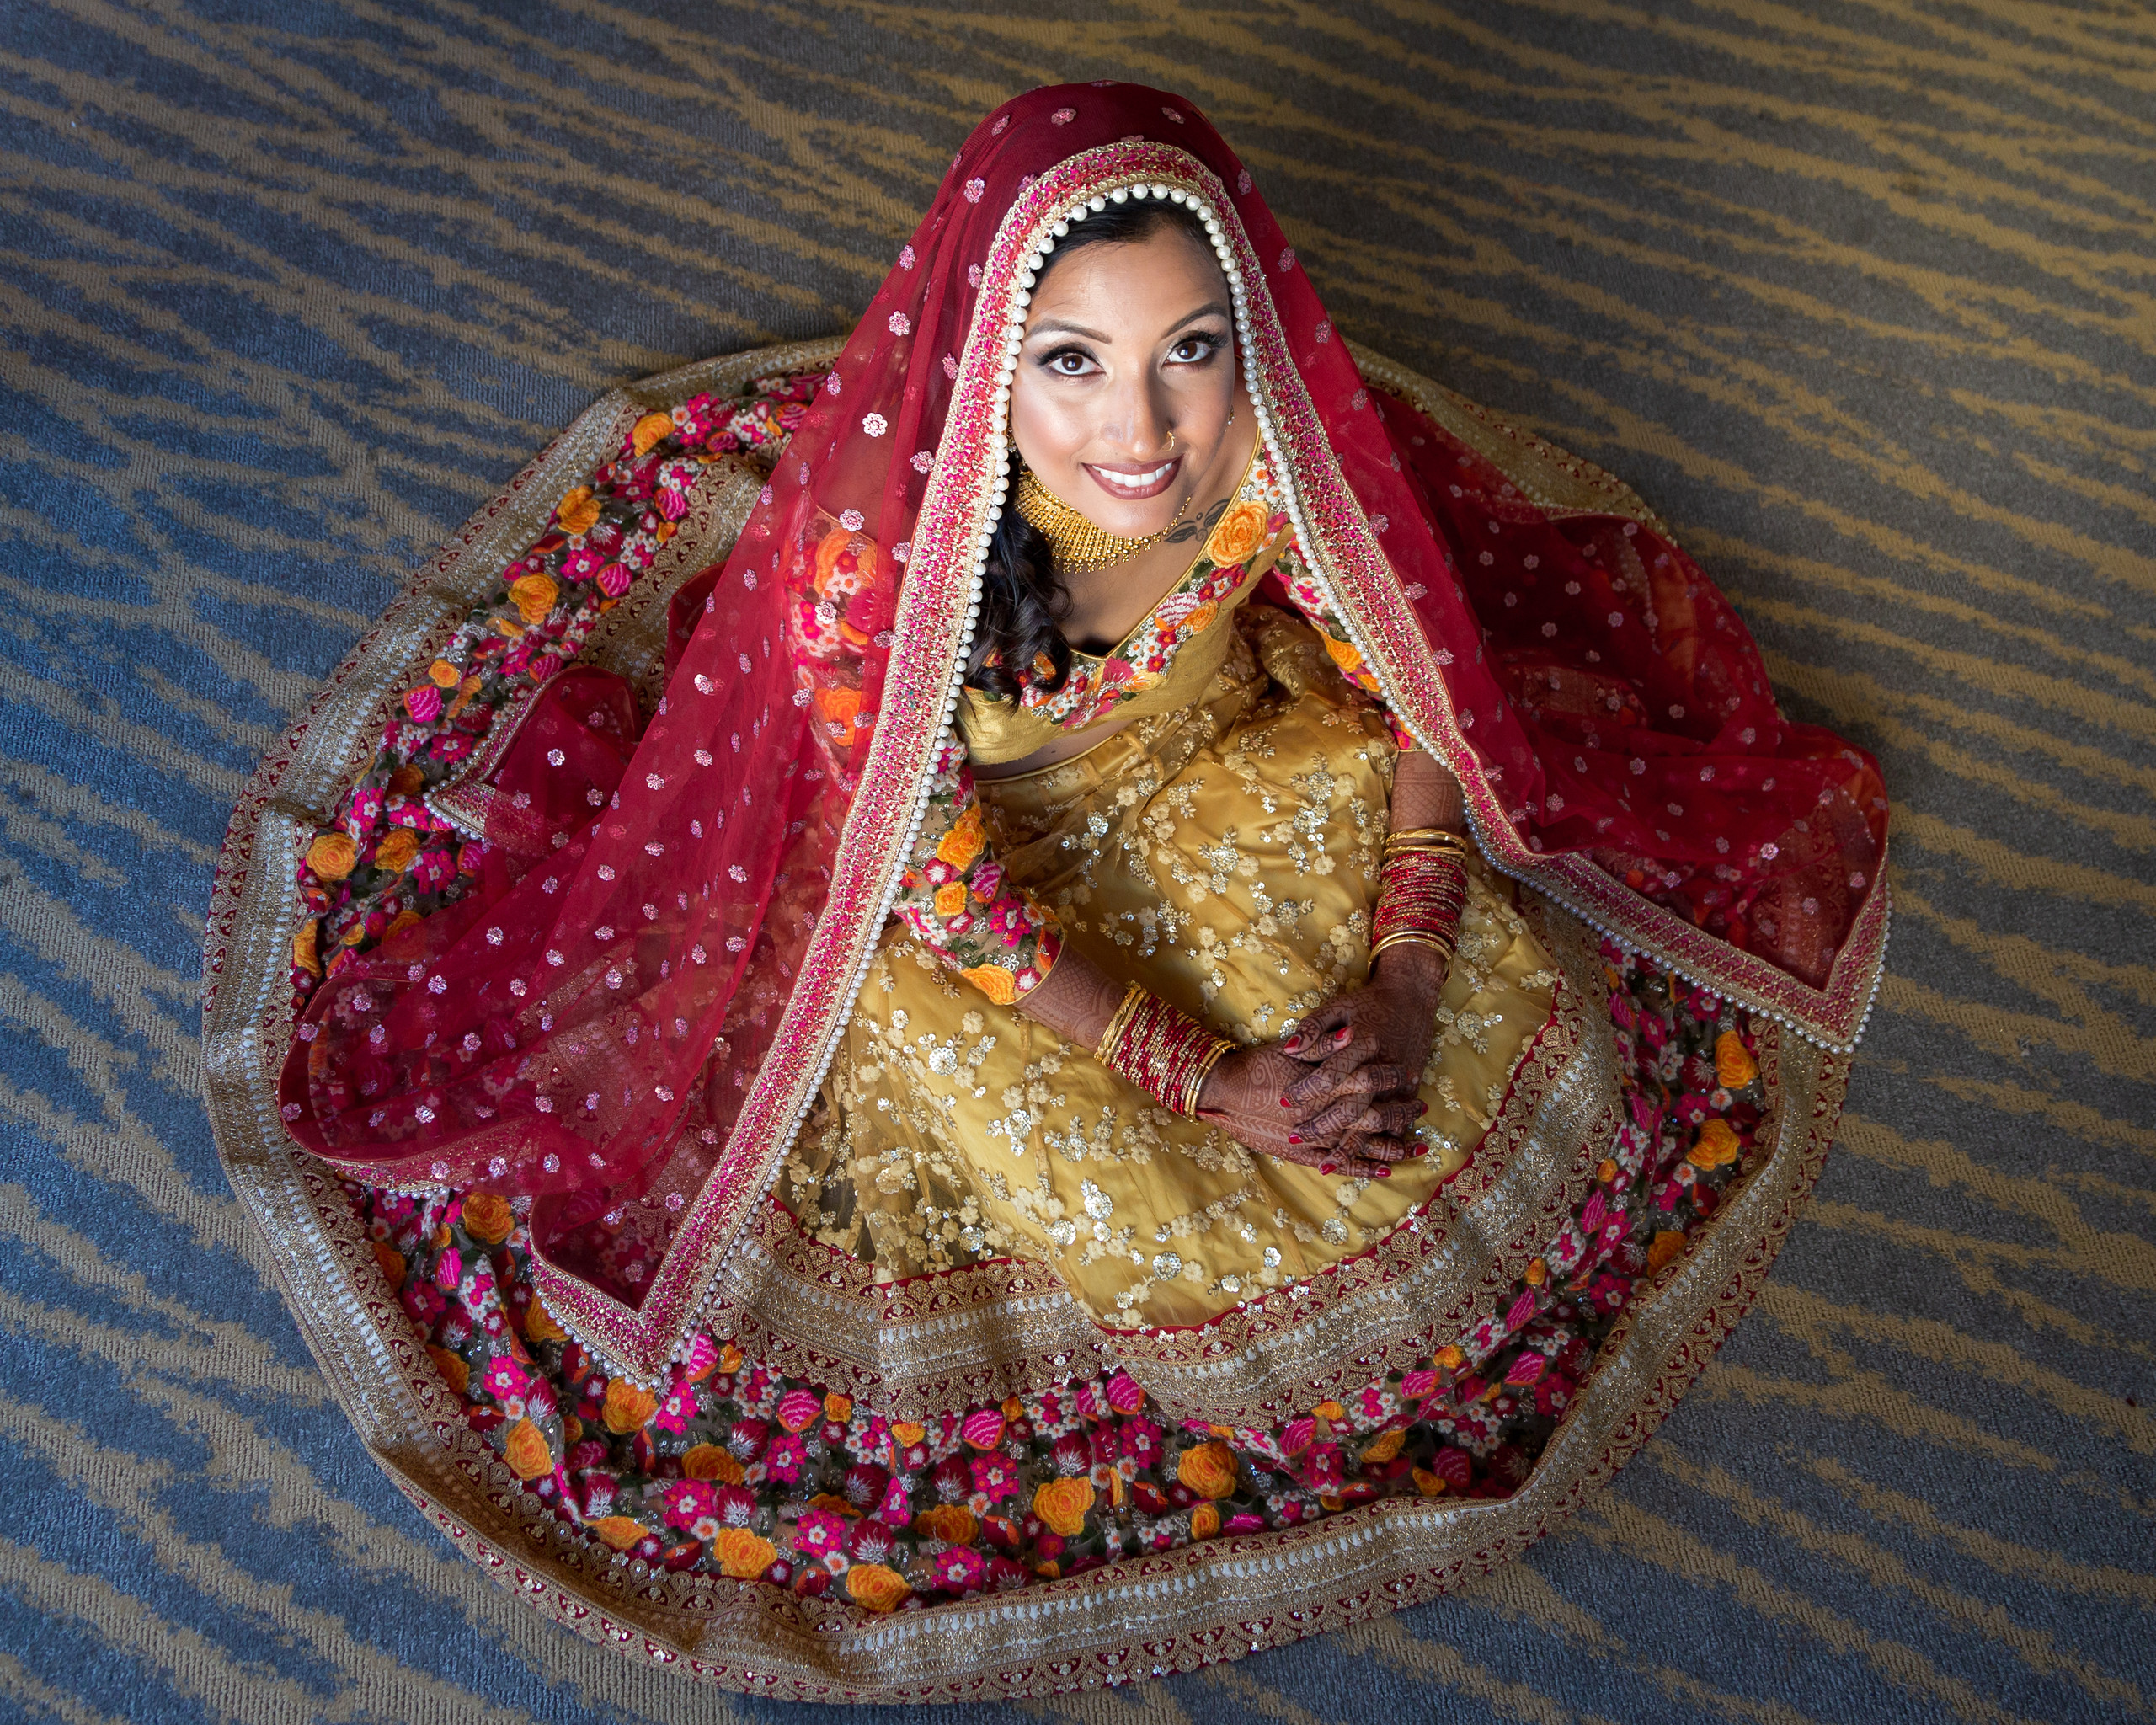 Bridal portrait in her traditional Nepali wedding dress before the wedding ceremony at the Penn Museum in Philadelphia, Pennsylvania.